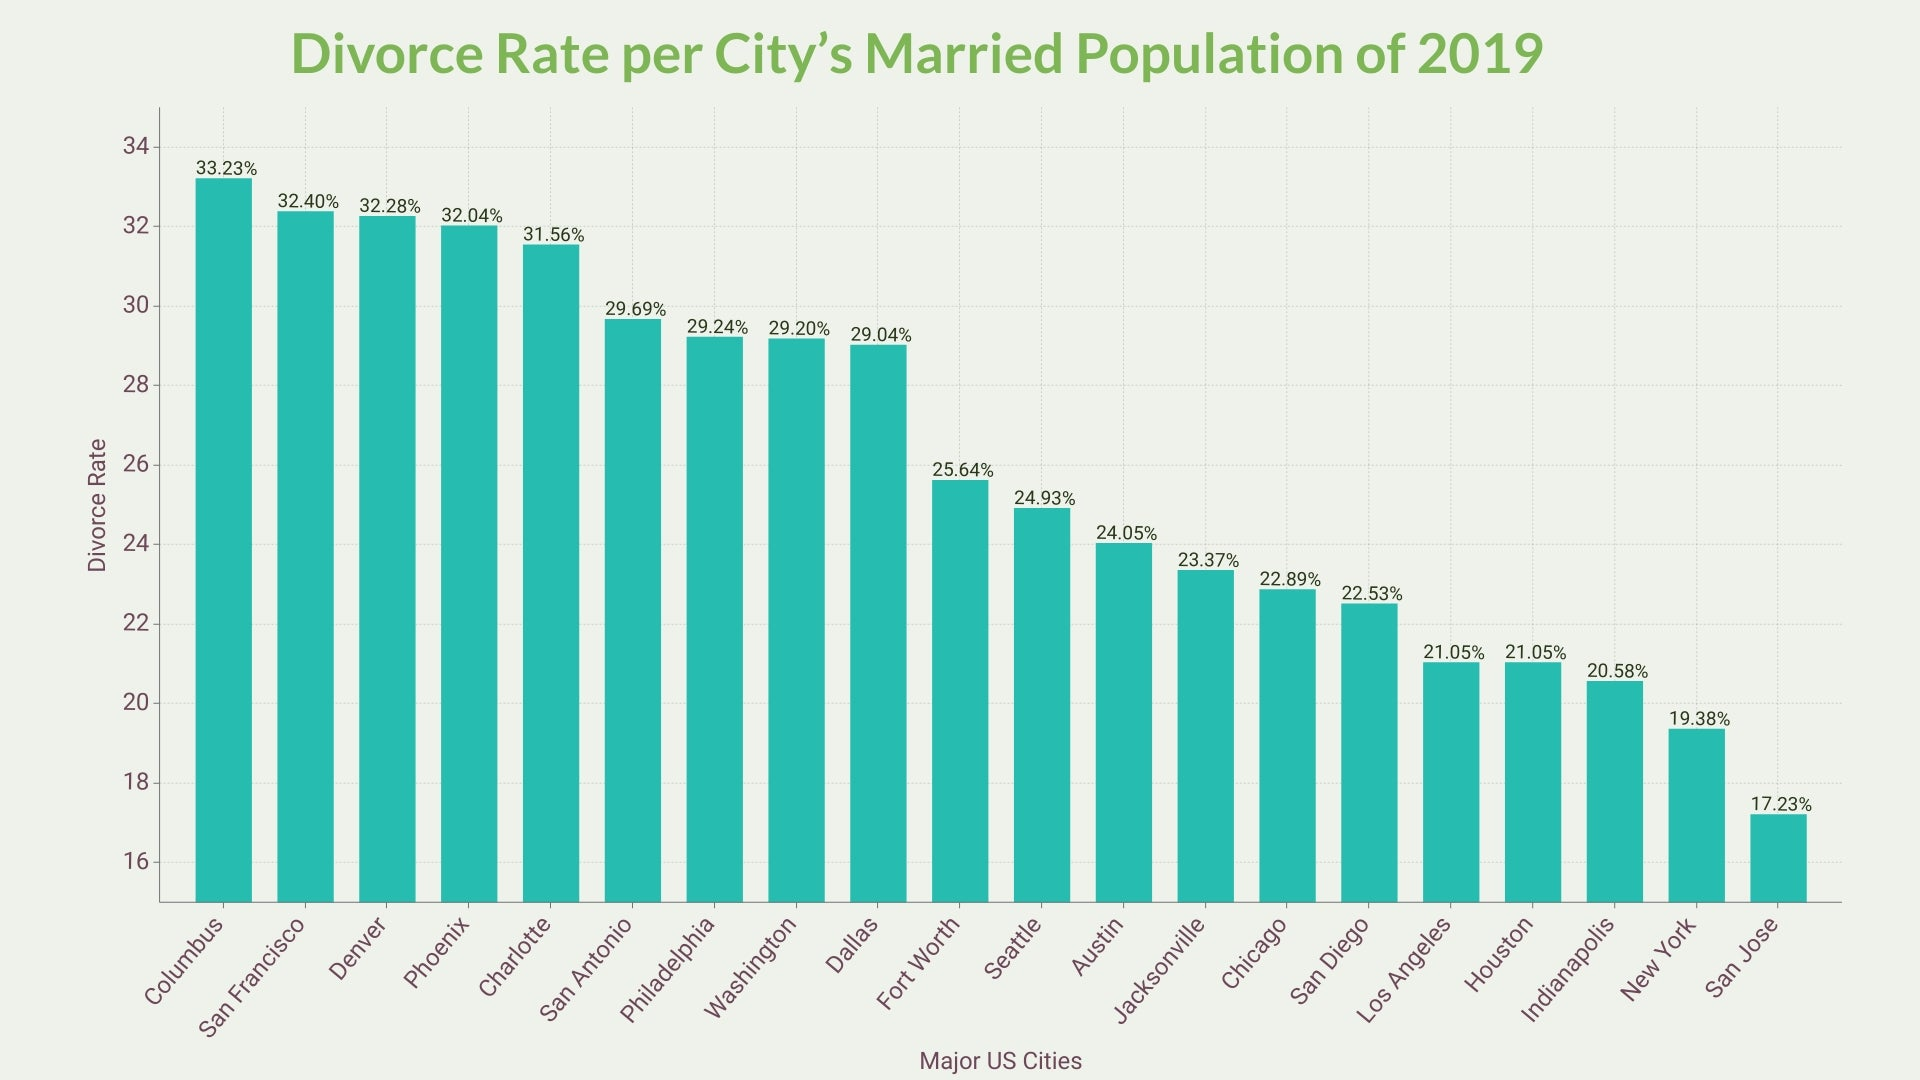 Divorce Rate per City's Married Population of 2019